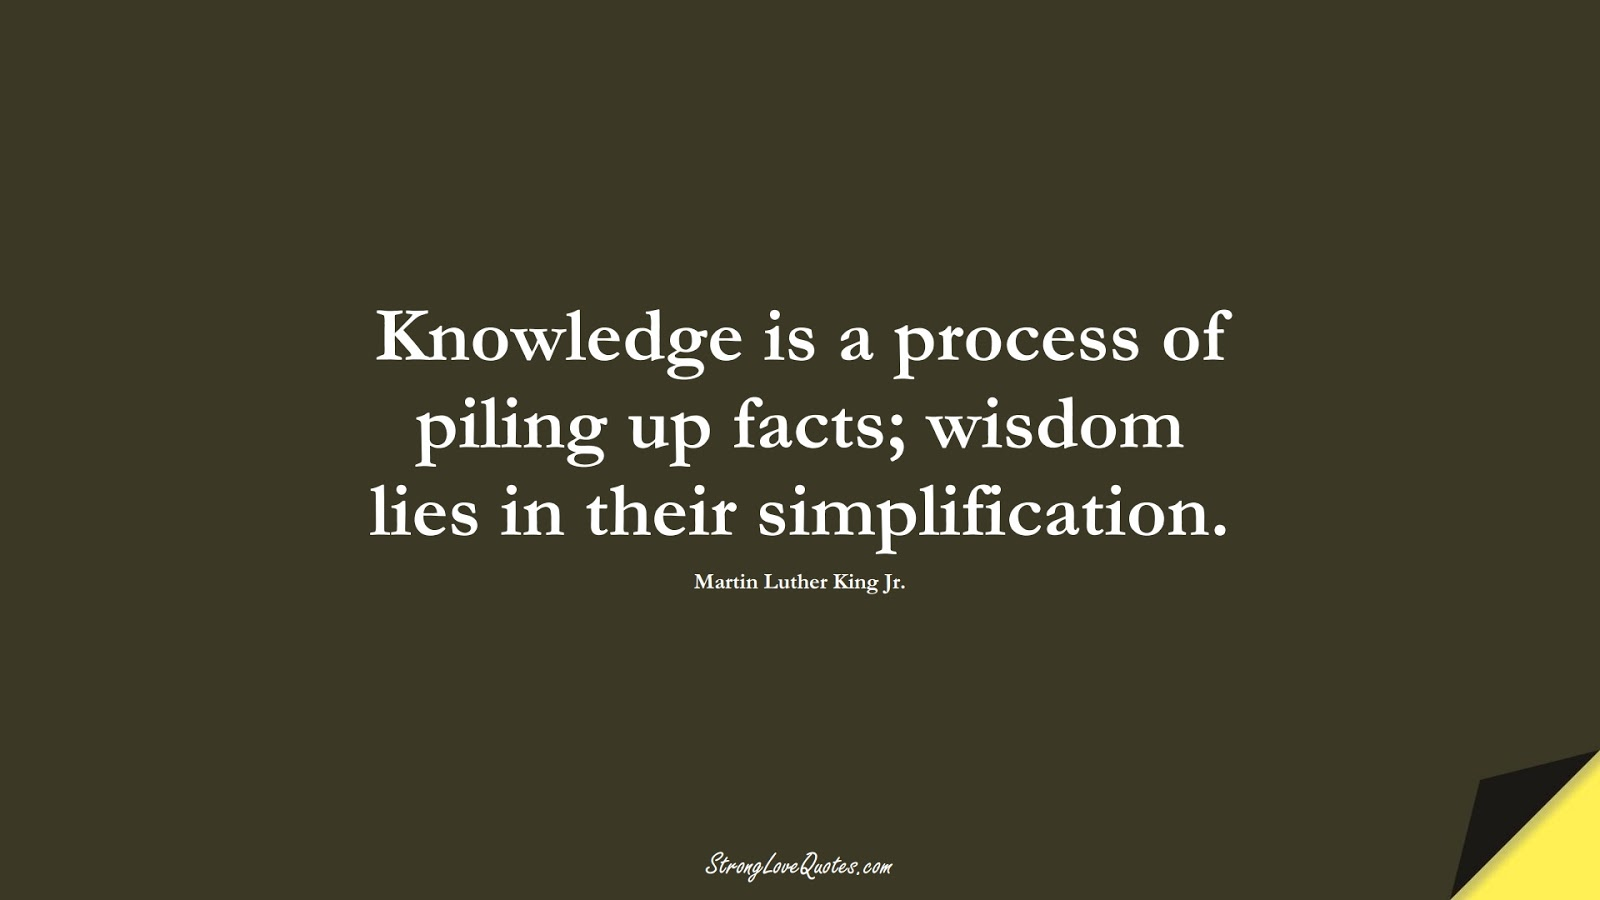 Knowledge is a process of piling up facts; wisdom lies in their simplification. (Martin Luther King Jr.);  #KnowledgeQuotes